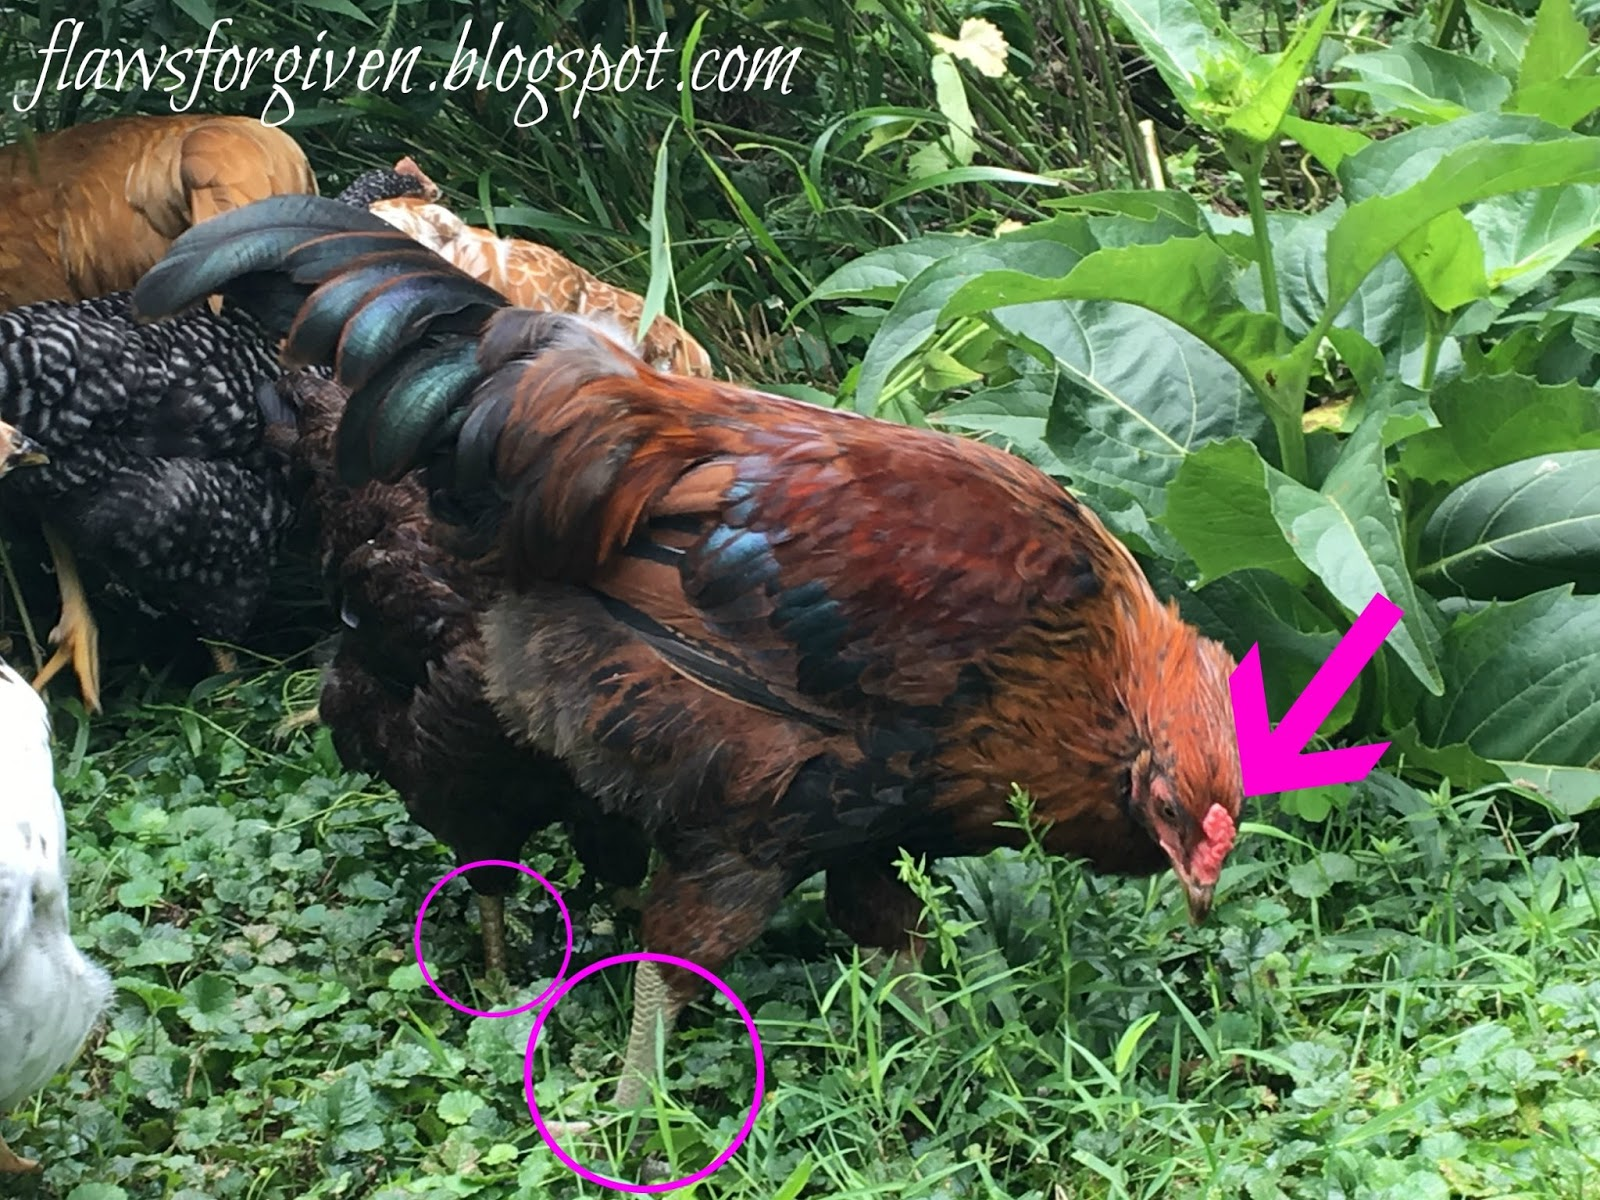 flaws forgiven how to spot a rooster and what to do with him